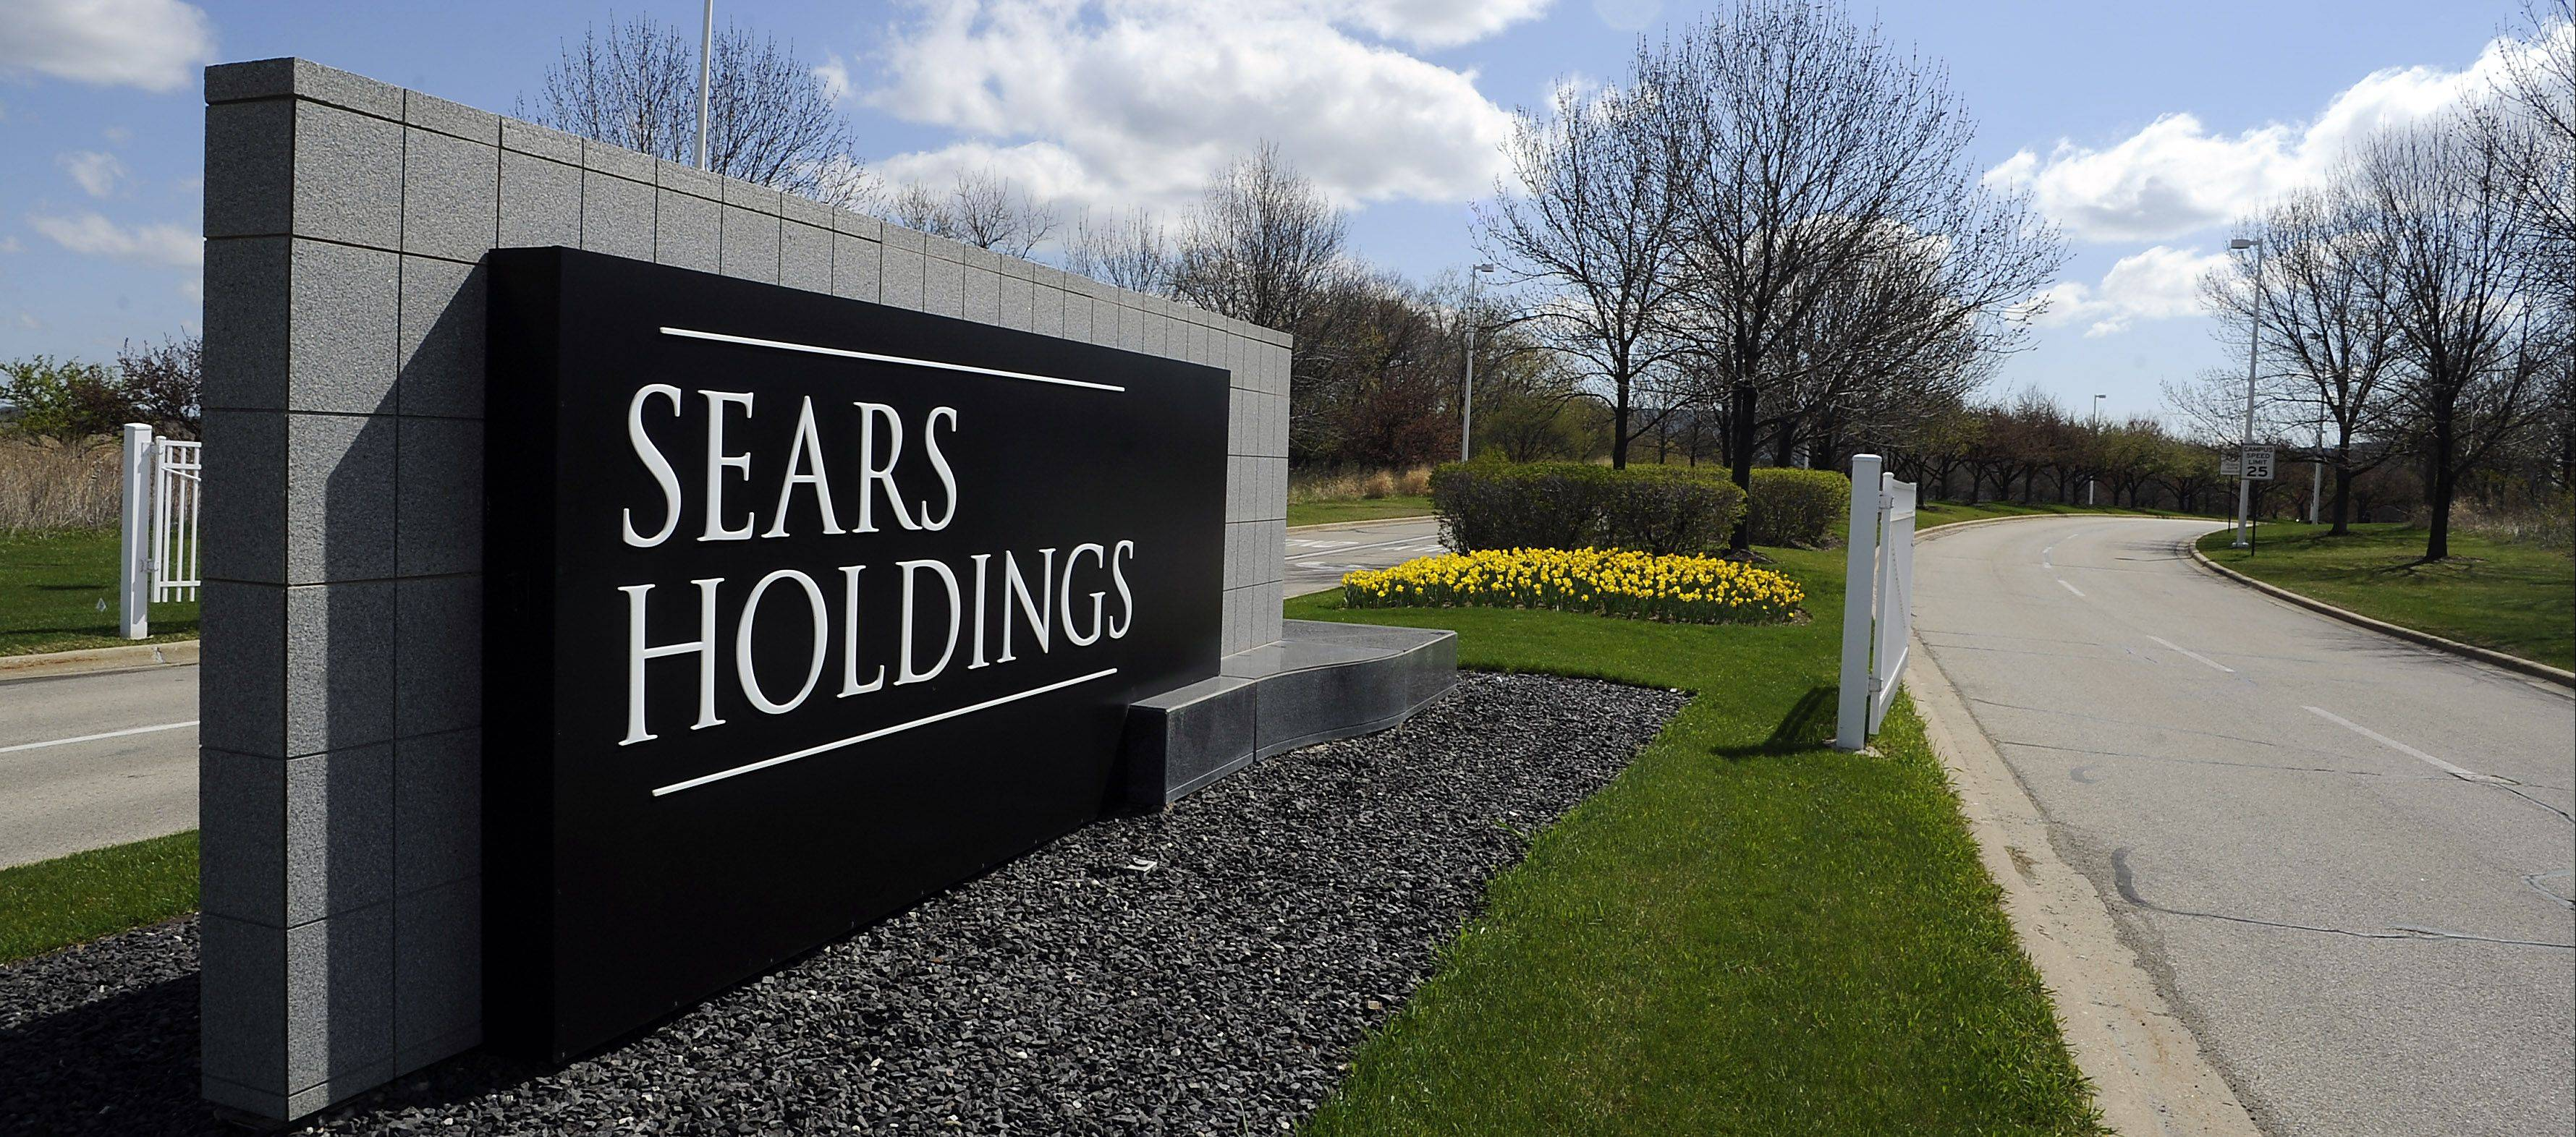 Sears Holdings Corp. regularly files appeals on the value of their headquarters property at 3333 Beverly Road in Hoffman Estates. They have received more than $30 million in reductions in some years from the Cook County Assessor or the Board of Review.